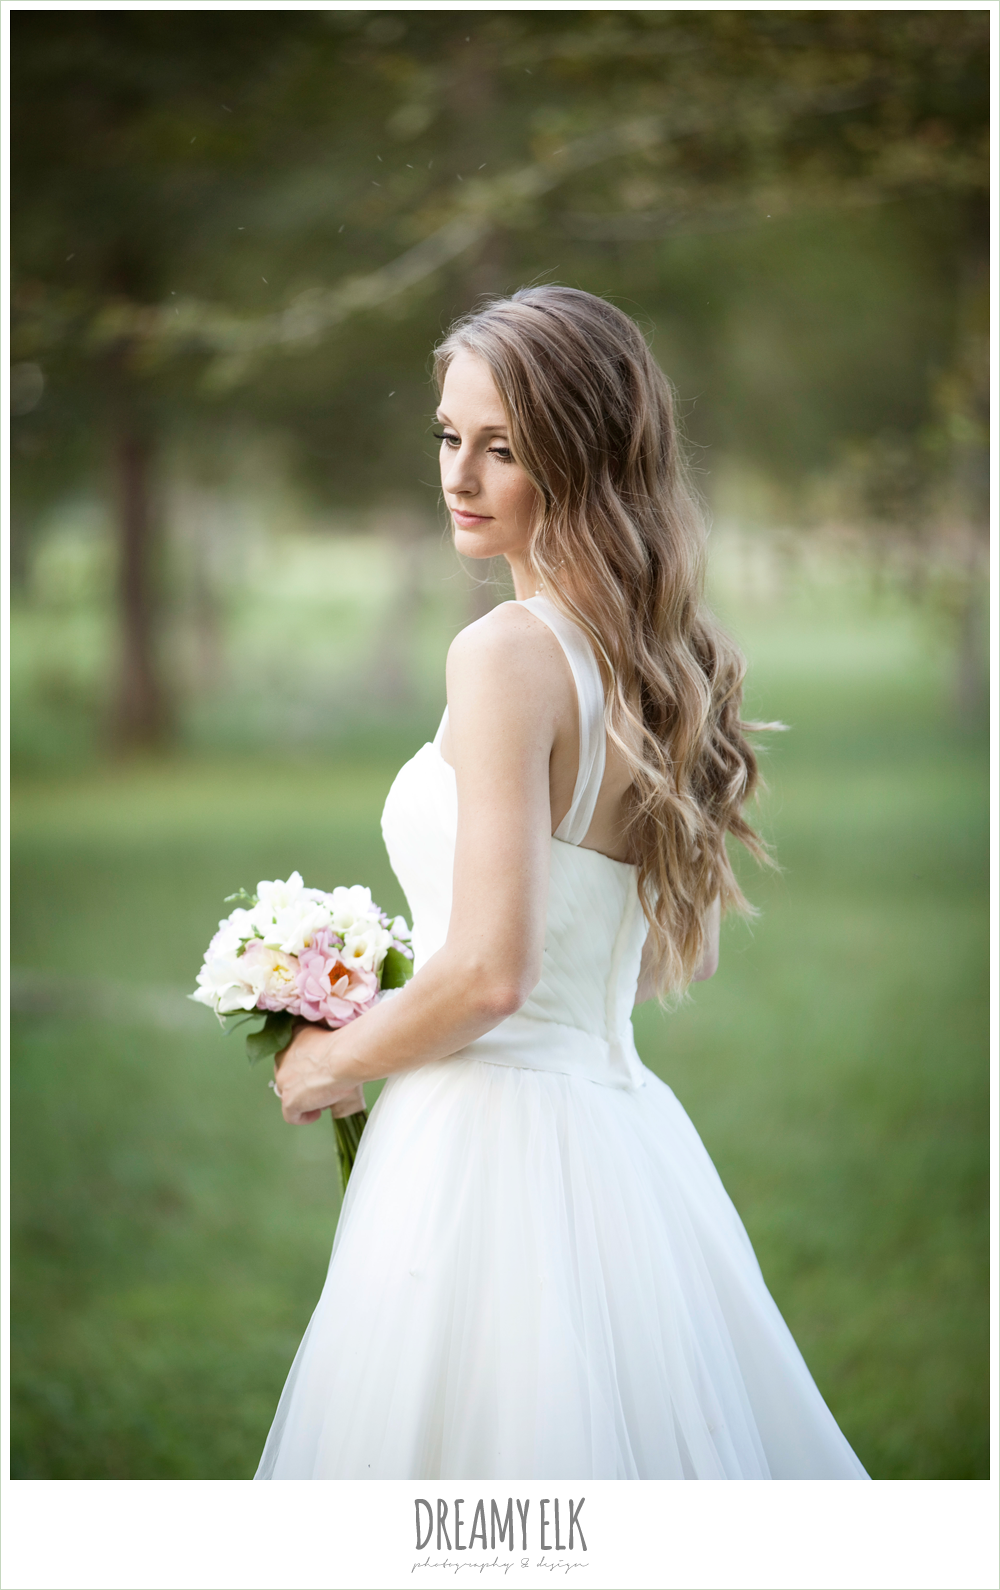 wedding hair down, spaghetti strap tulle wedding dress, rustic chic post wedding shoot, dreamy elk photography and design